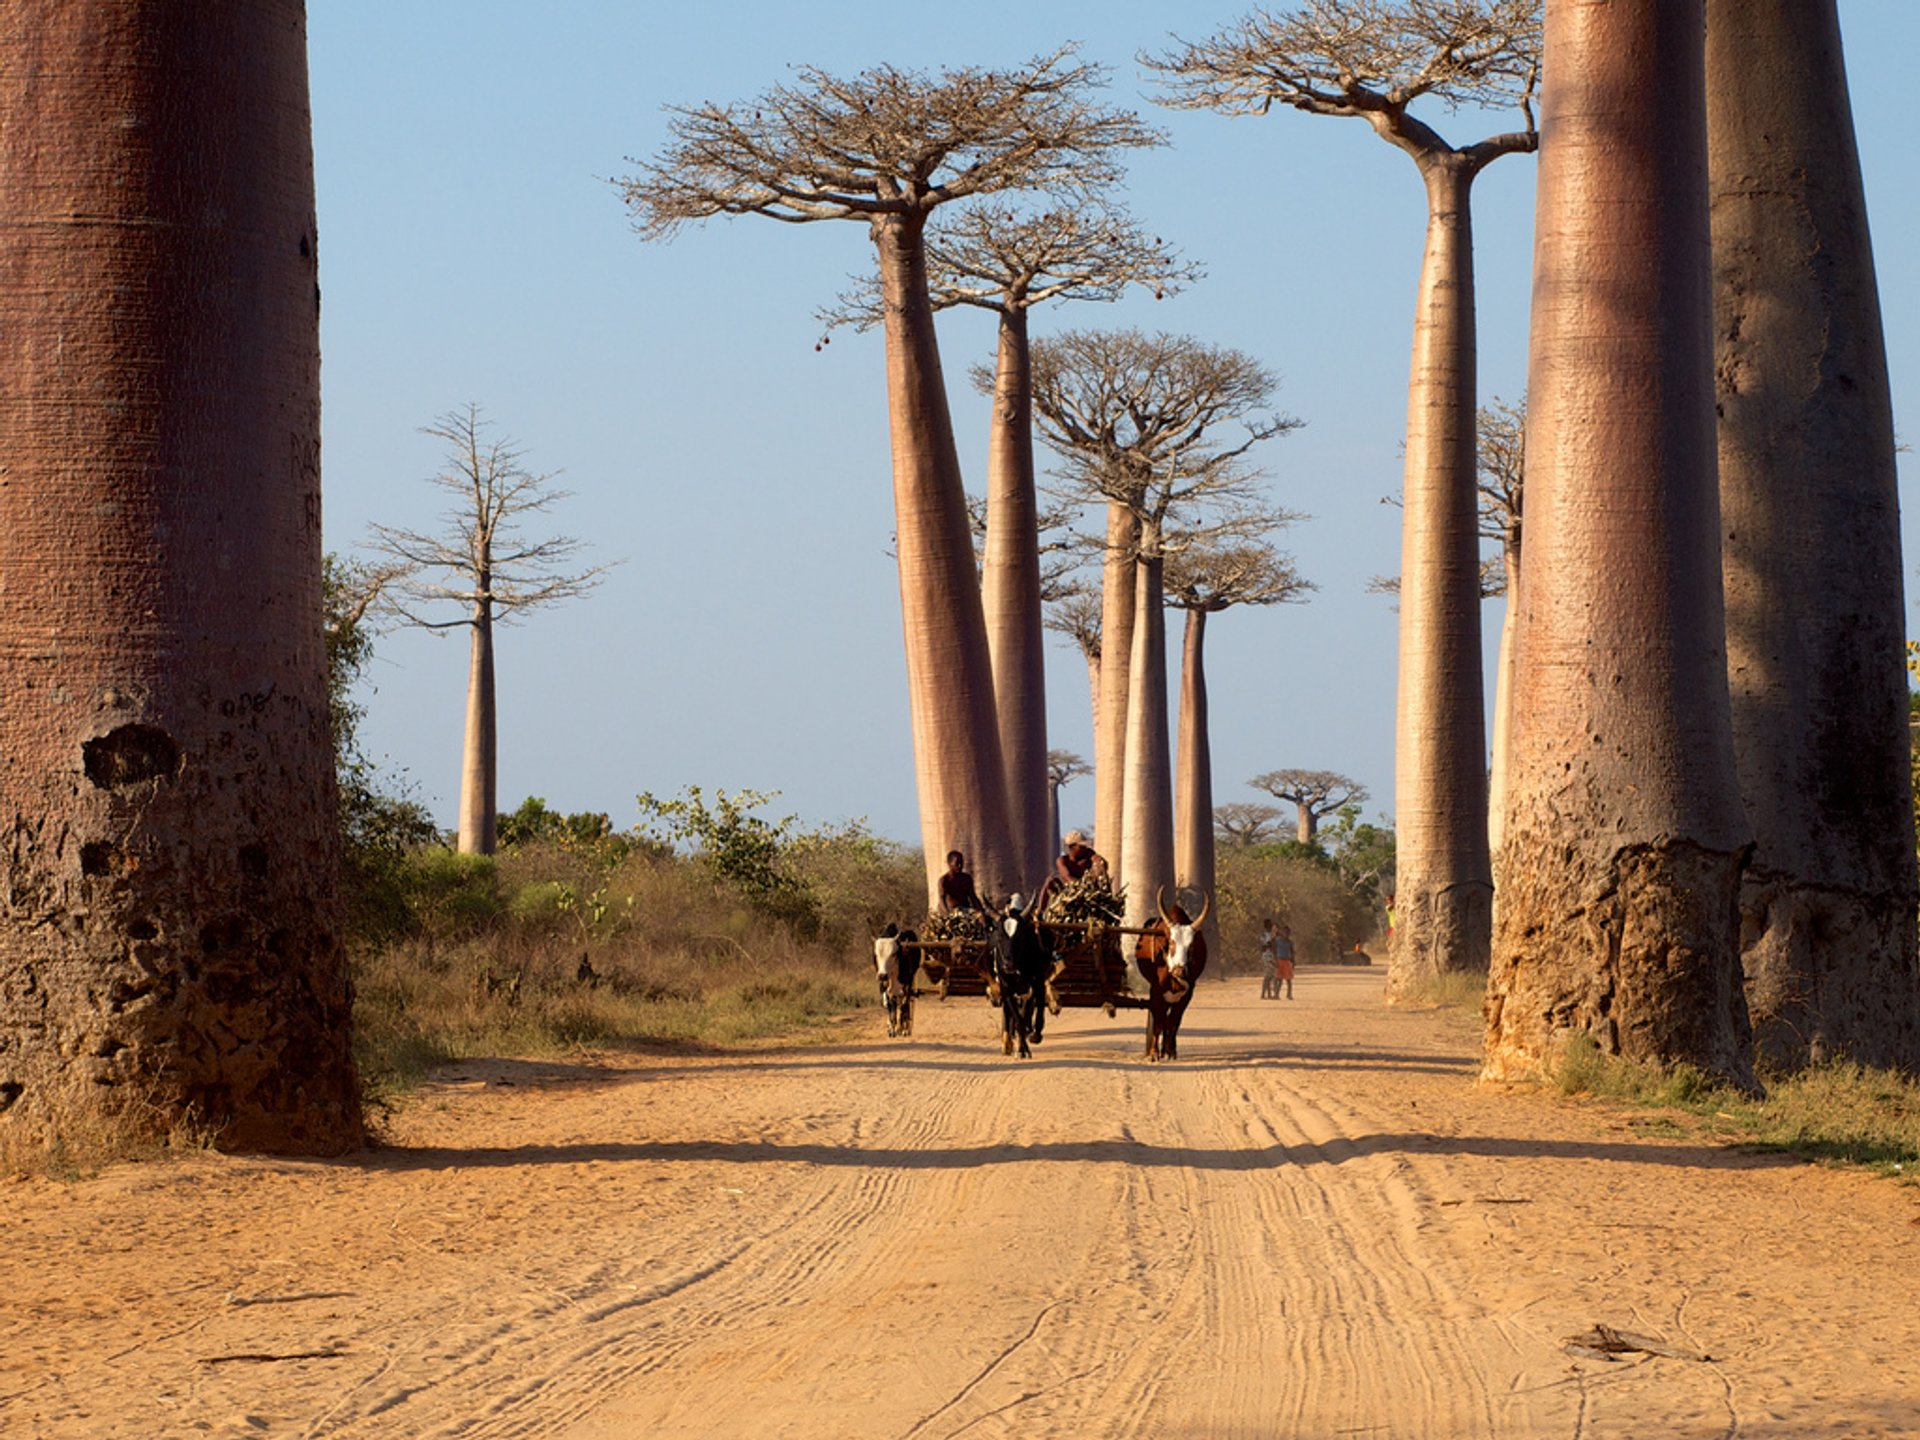 Avenue of the Baobabs in Madagascar - Best Season 2020